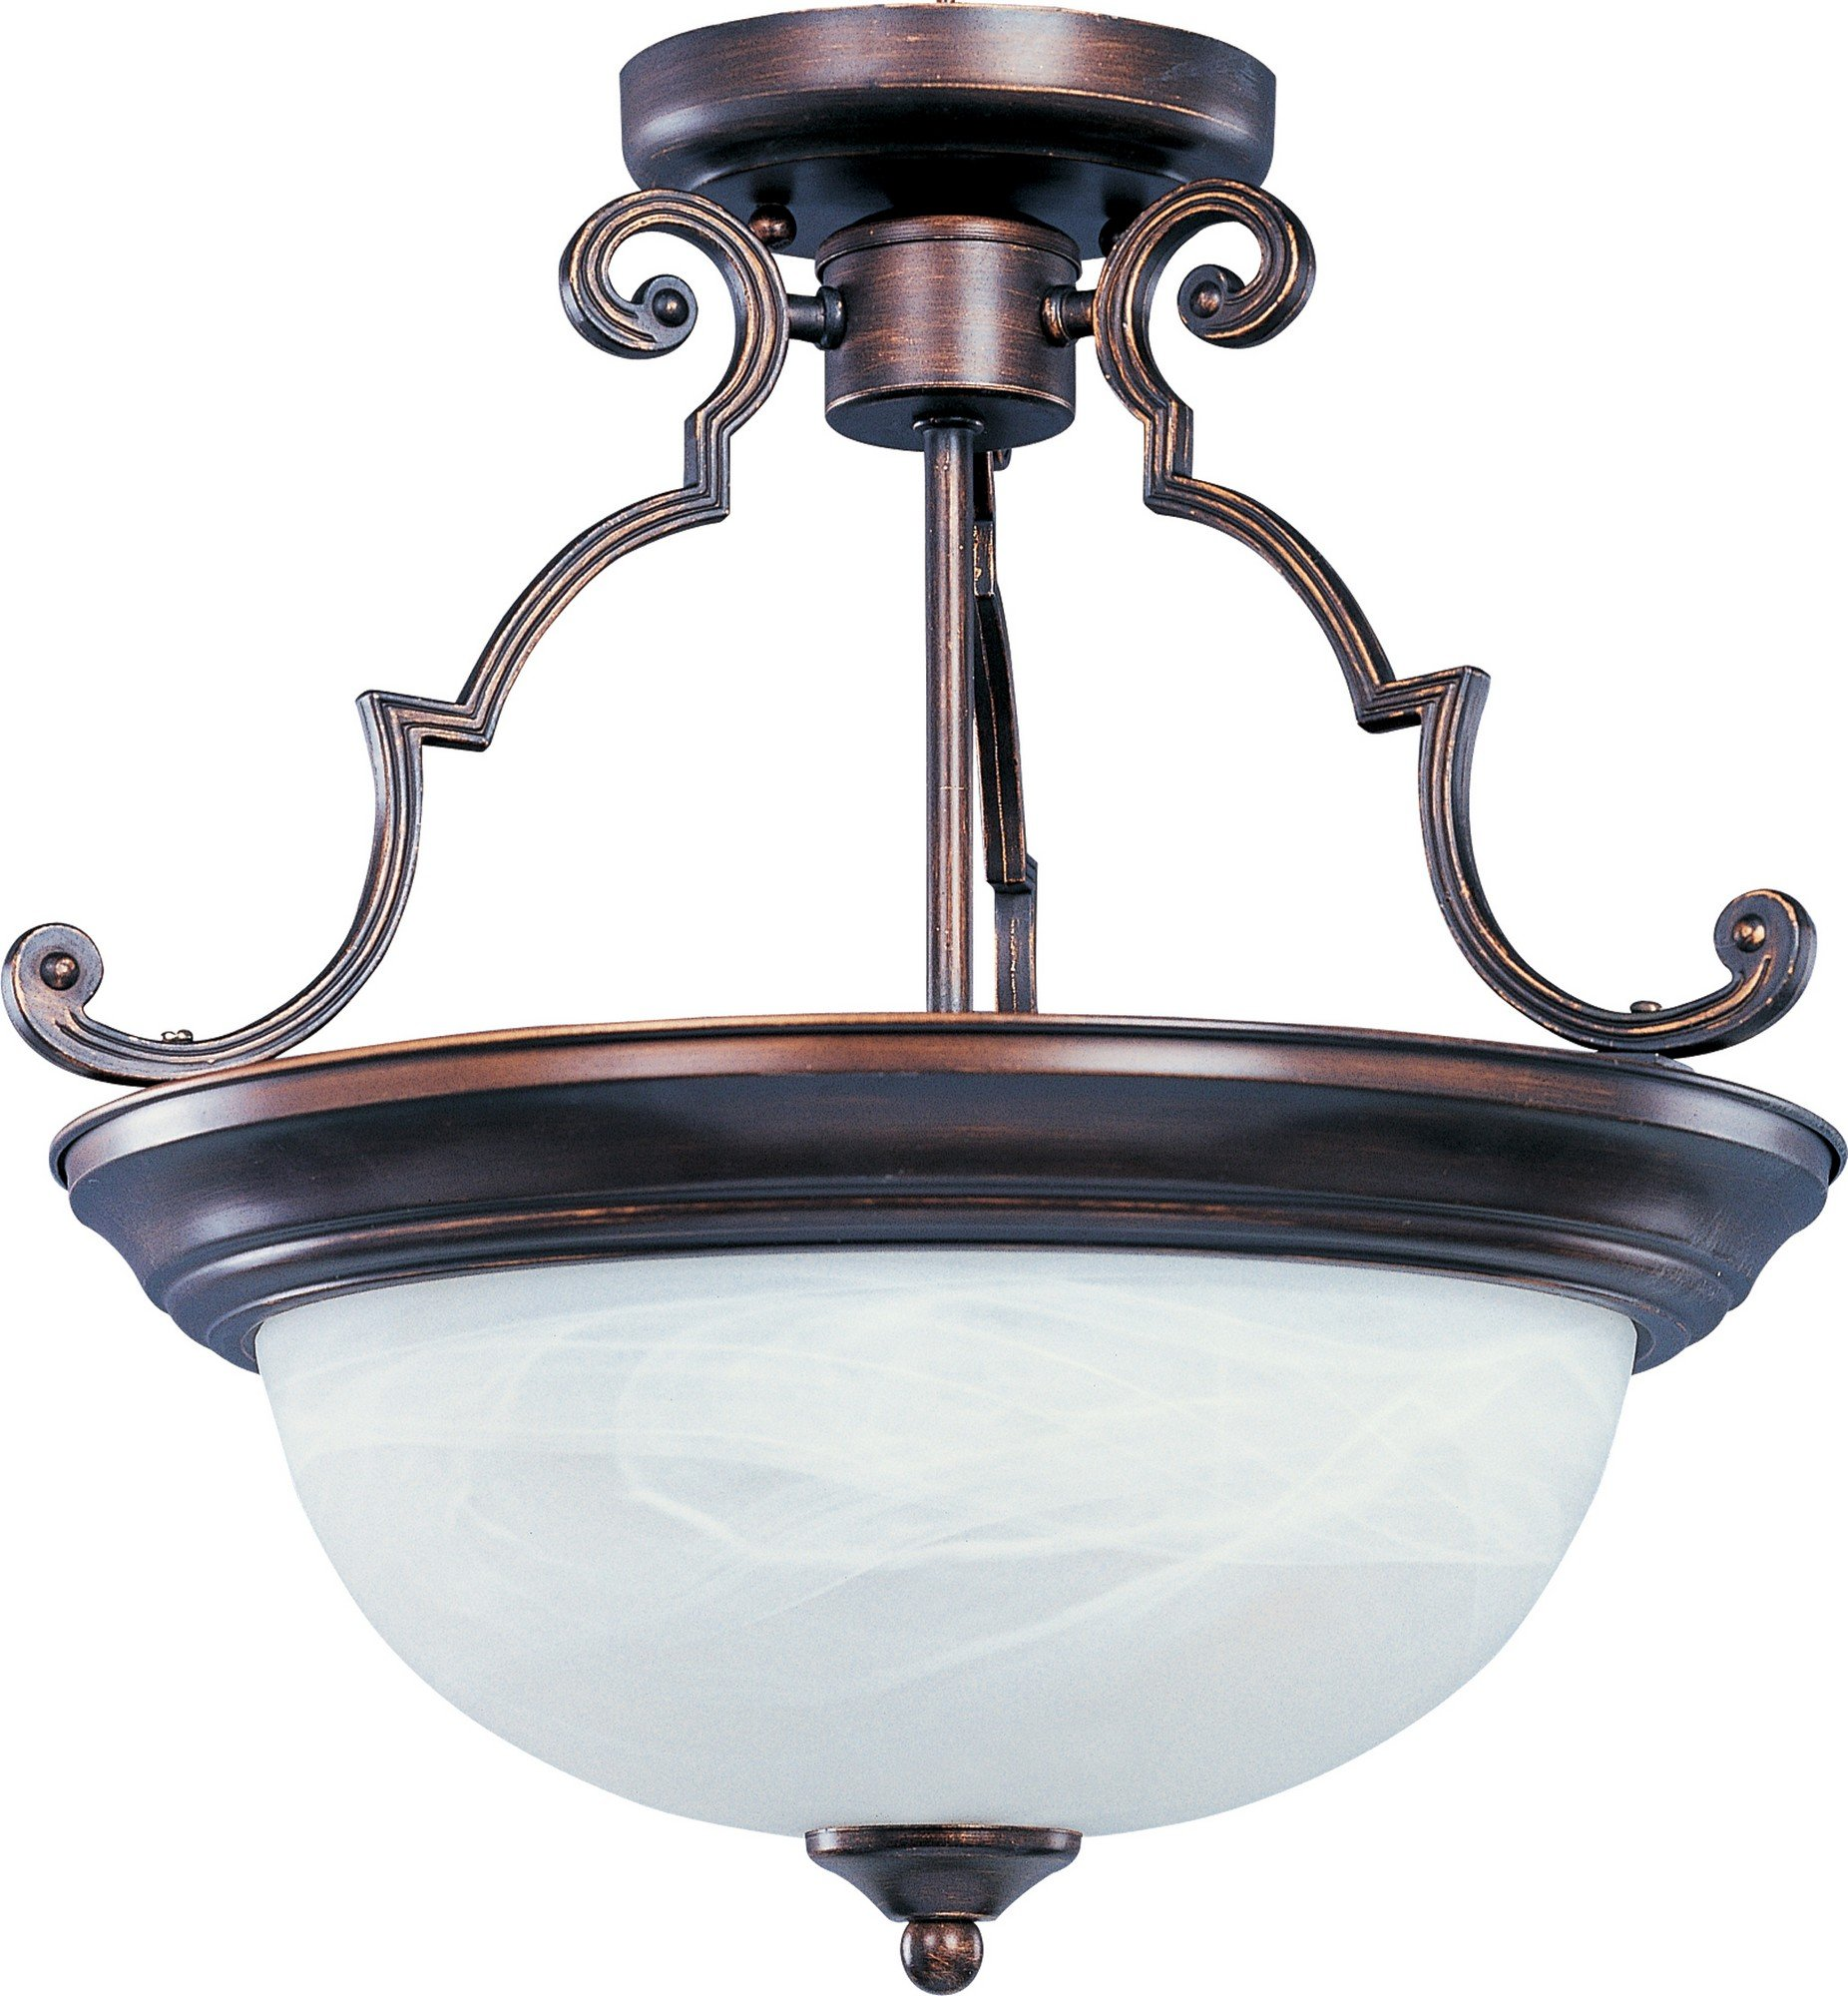 Maxim 5843MROI Essentials 2-Light Semi-Flush Mount, Oil Rubbed Bronze Finish, Marble Glass, MB Incandescent Incandescent Bulb , 60W Max., Dry Safety Rating, Standard Dimmable, Linen Fabric Shade Material, Rated Lumens